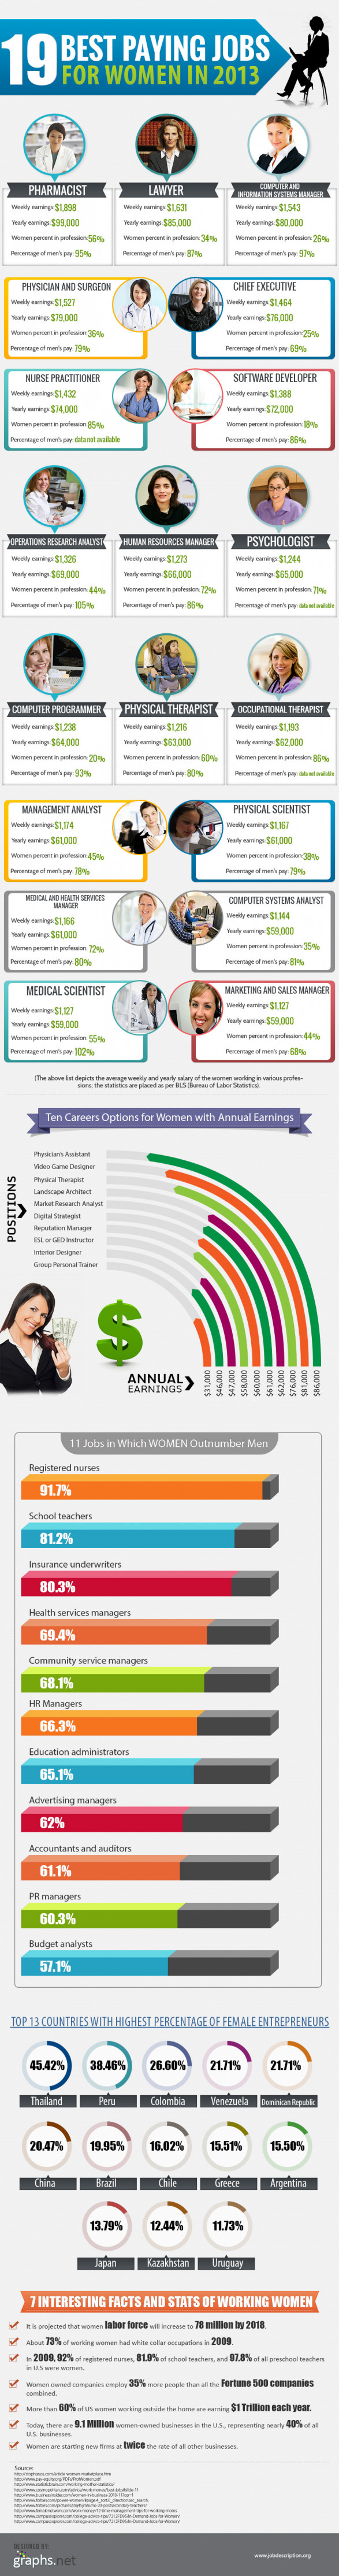 19 best paying jobs for women in 2013 women 2 0 best jobs for women